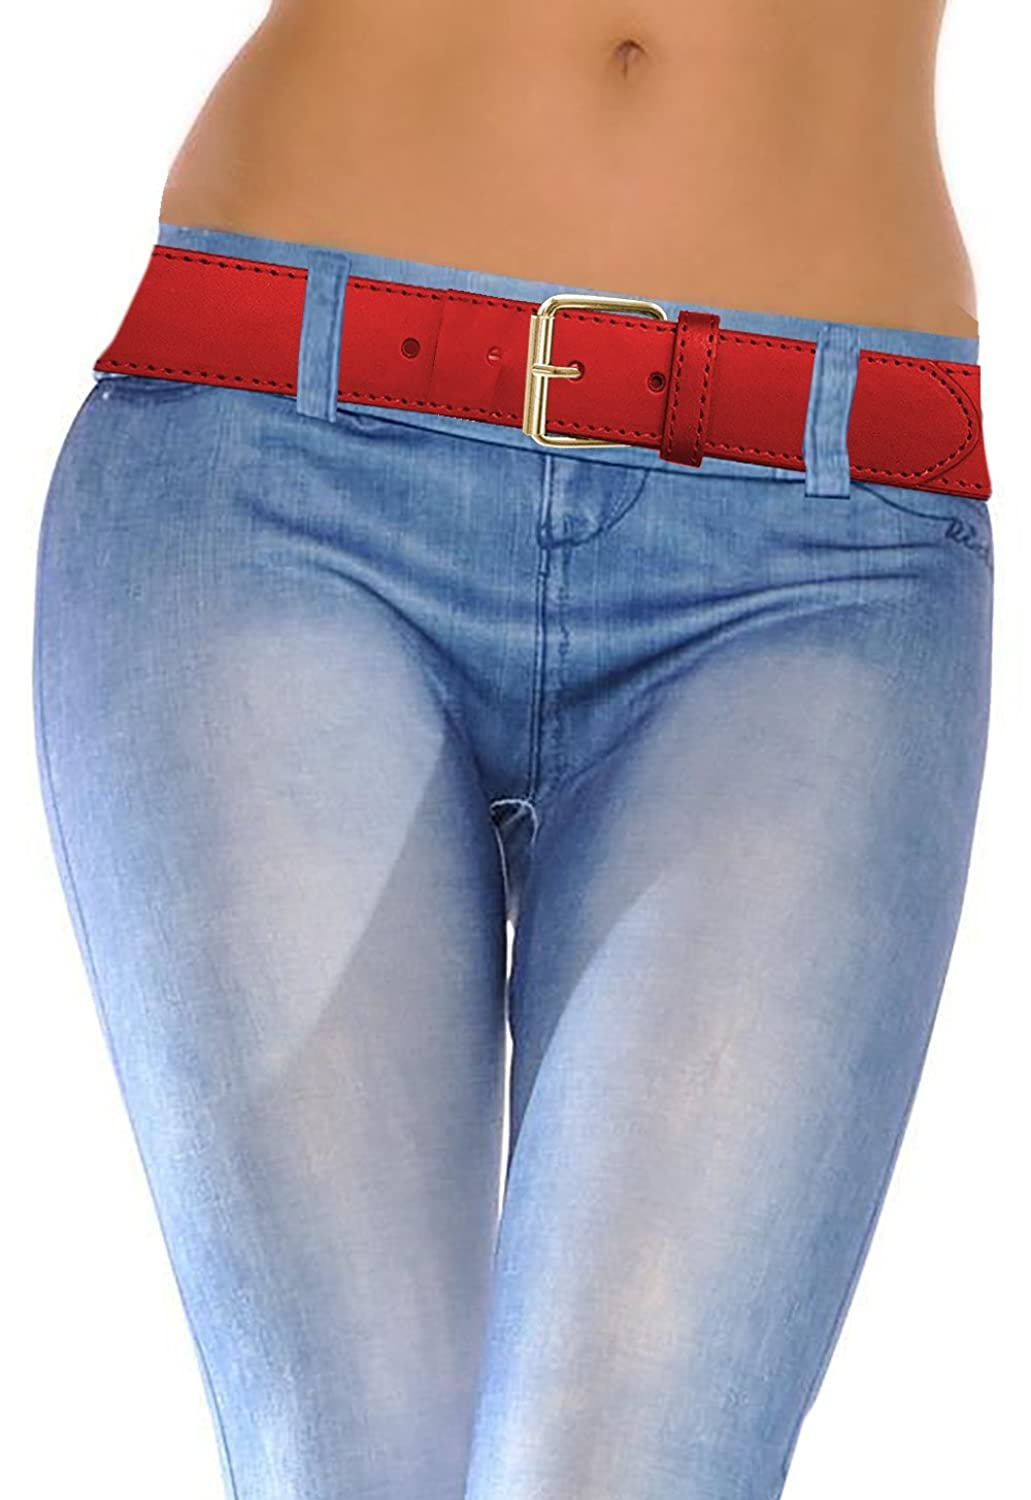 LUNA Top Quality Snap-On STITCH Gold Buckle Thick Wide Leather Belt - Red - Small